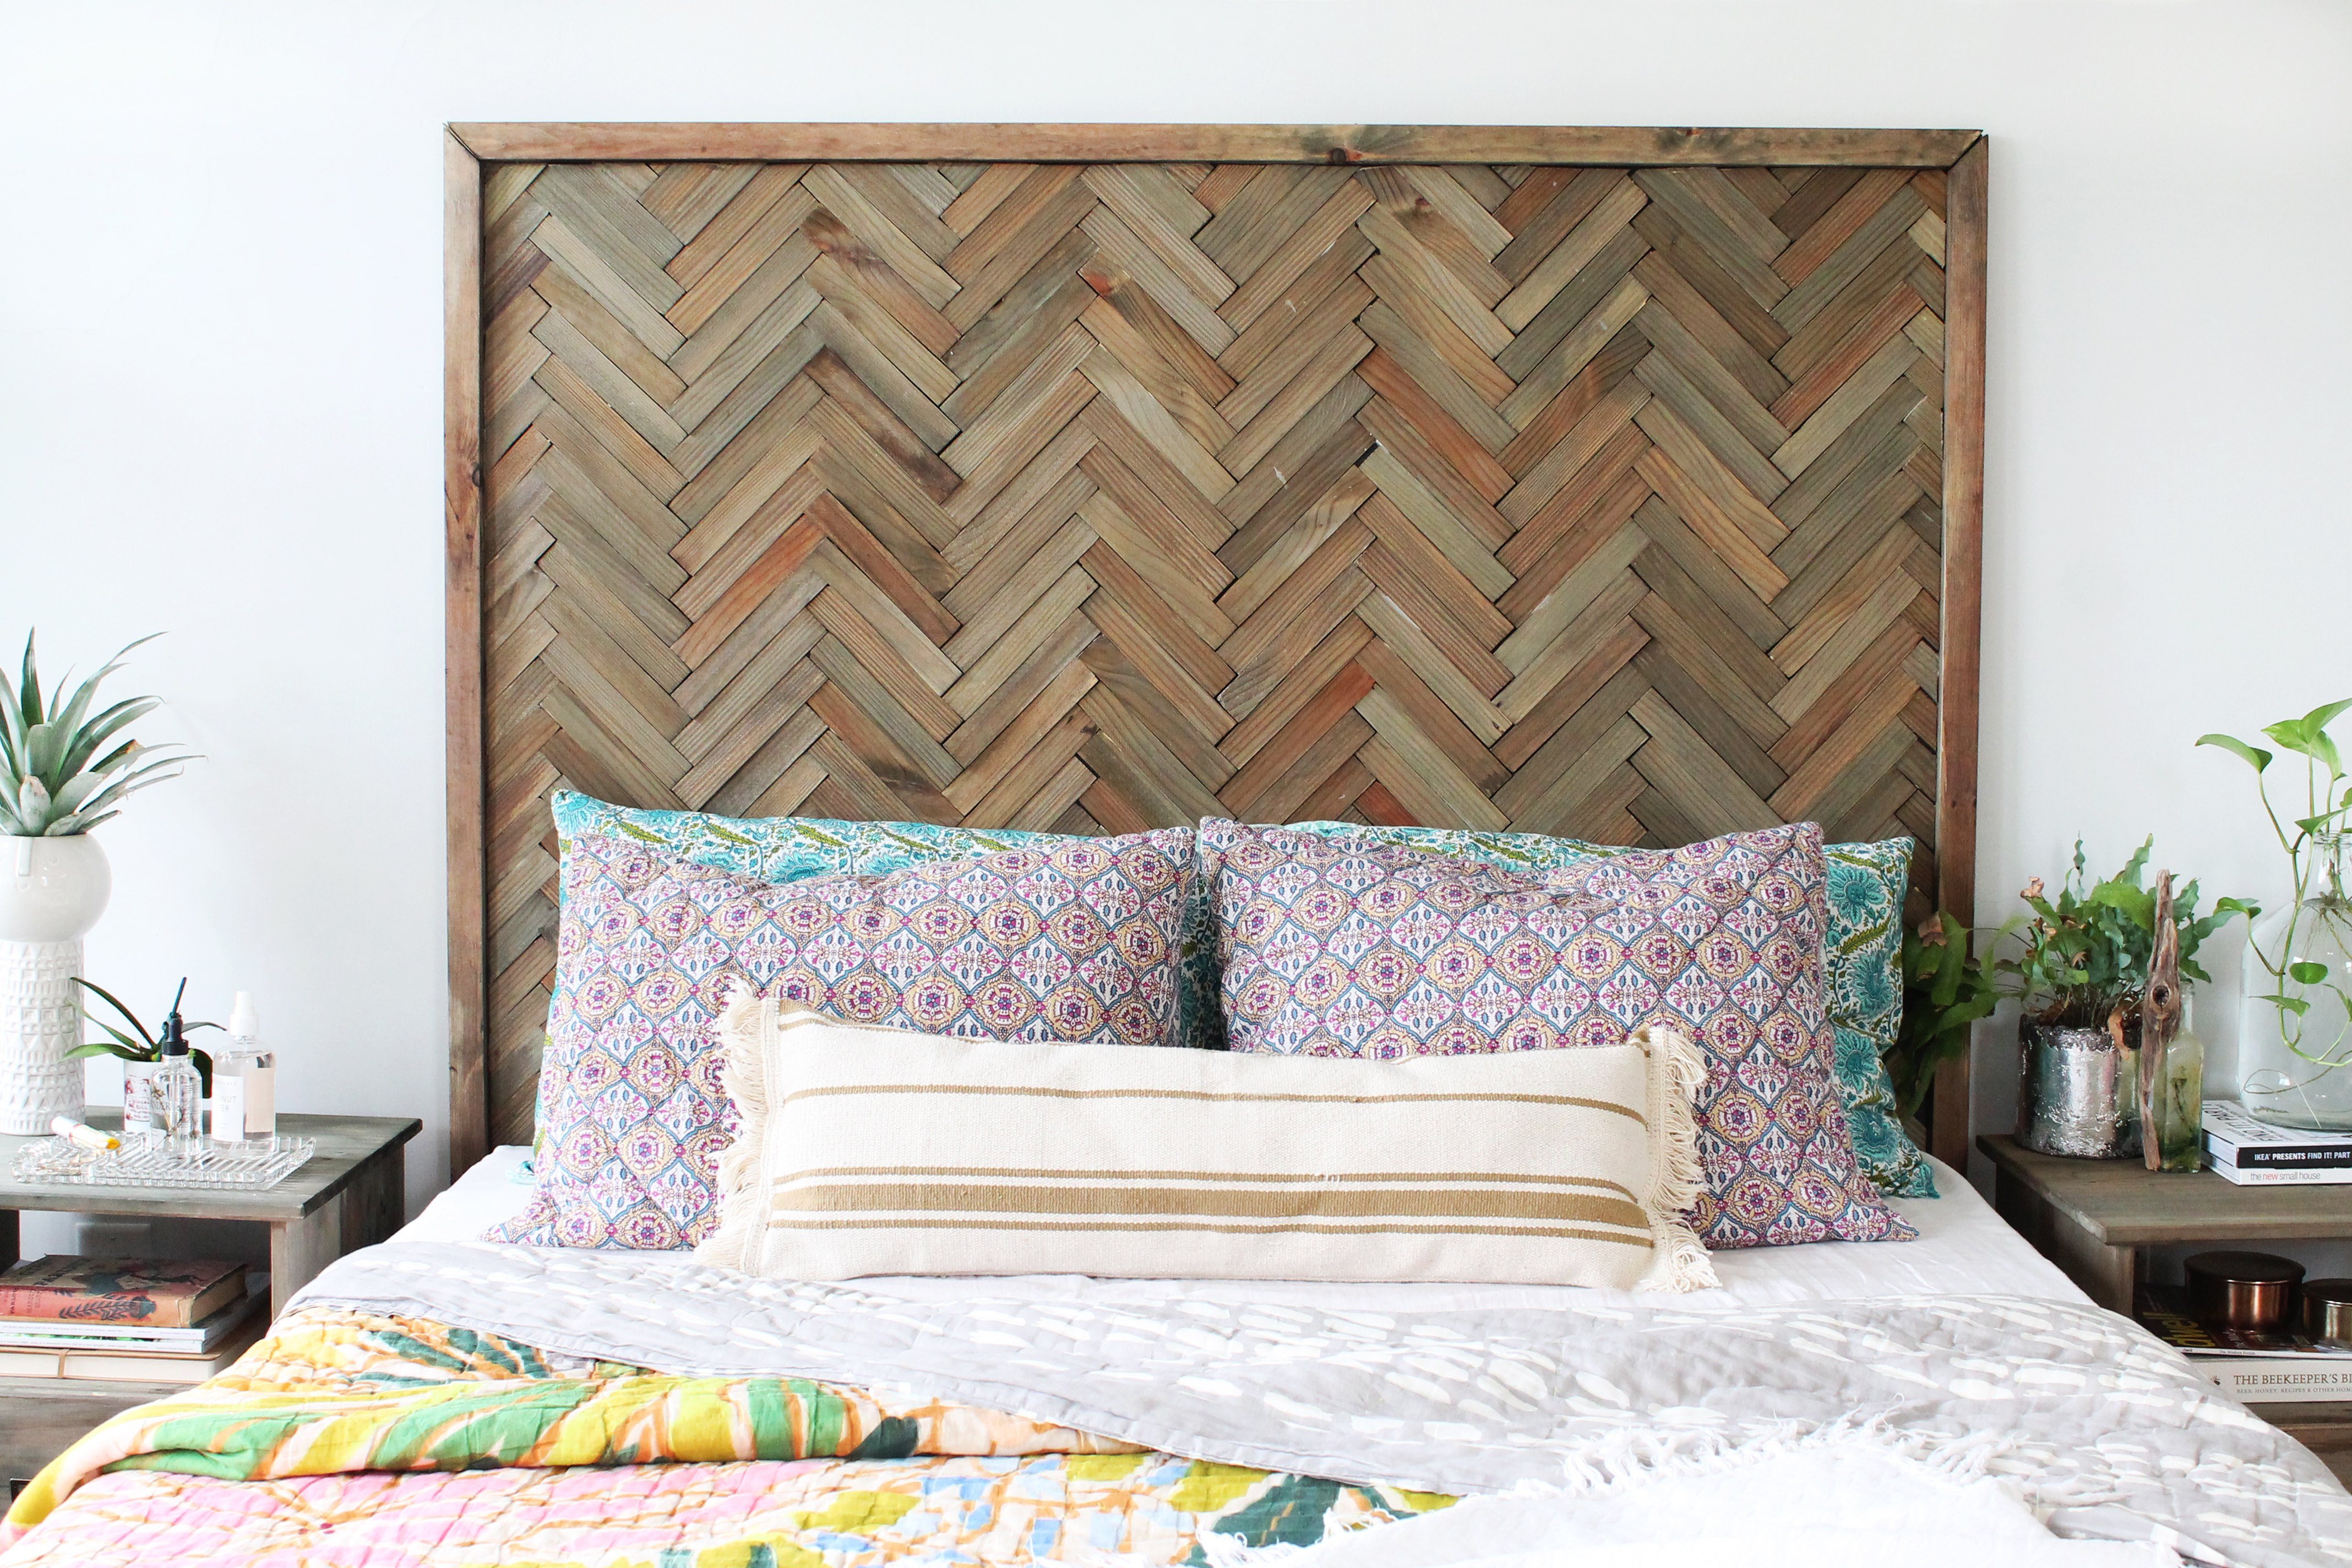 Diy herringbone headboard with wood shims ehow - What size fan should i get for my bedroom ...